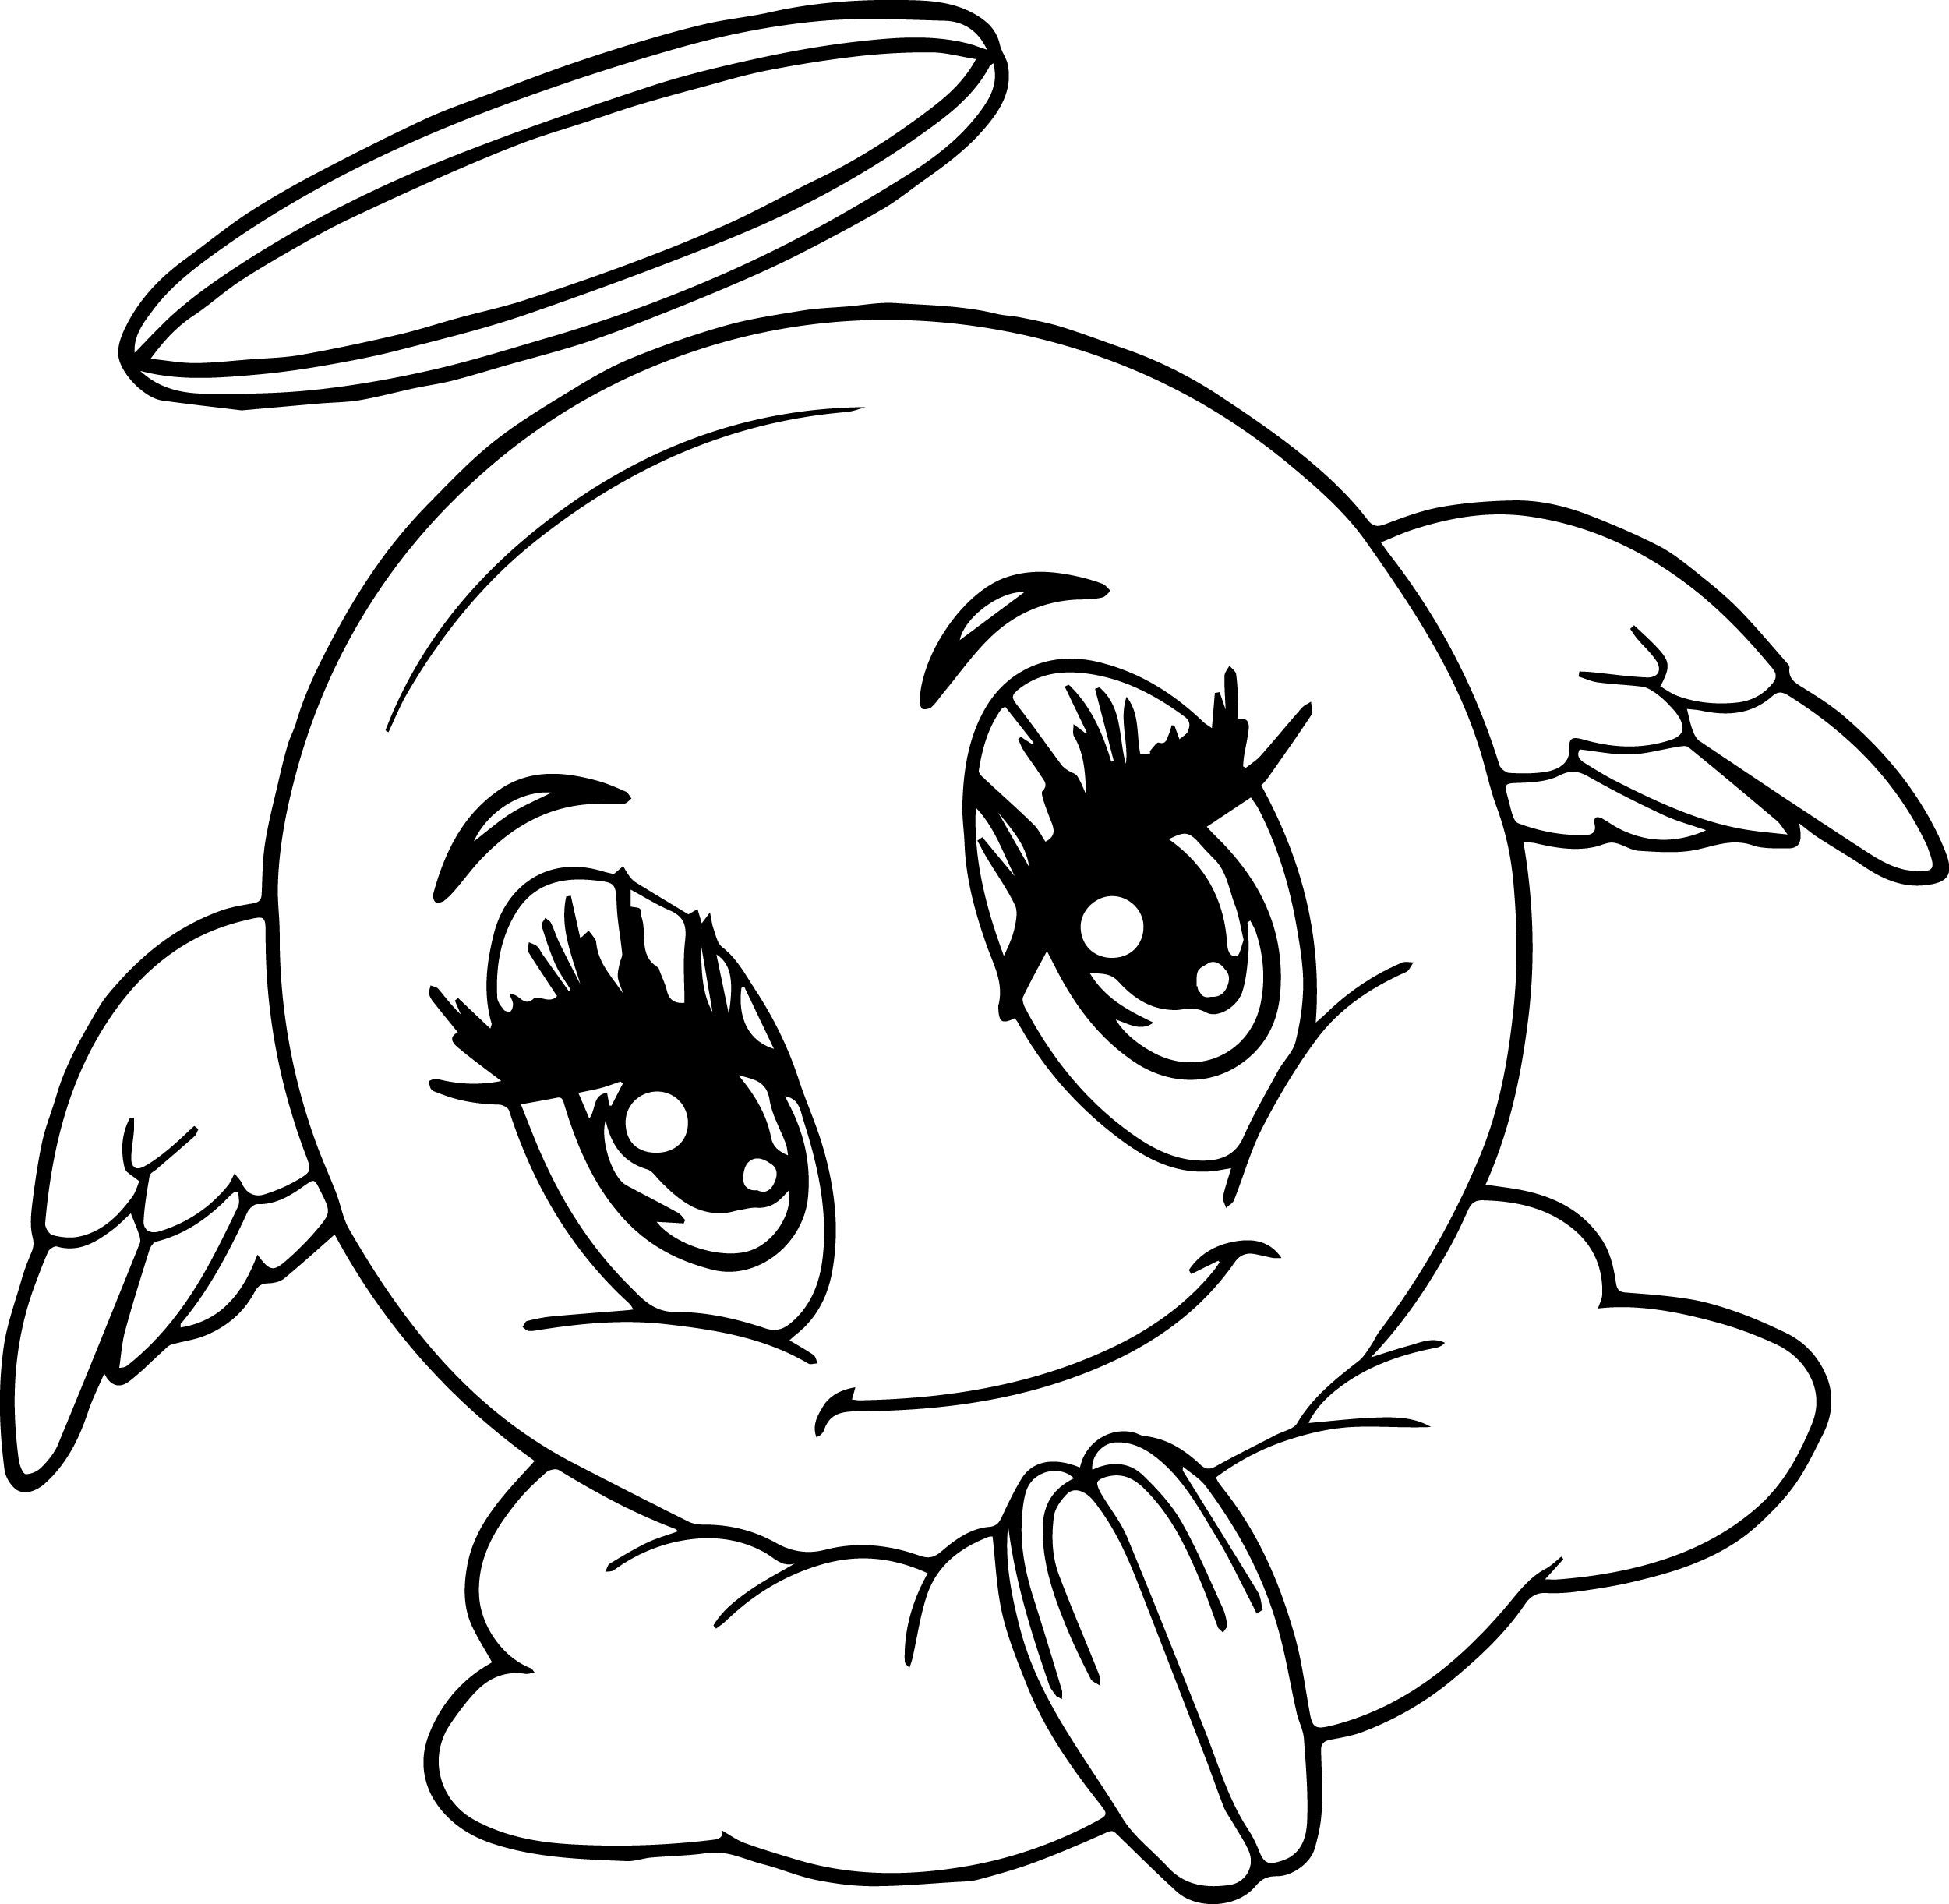 Awesome Angel Emoticon Face Coloring Page Malvorlagen Tiere Malvorlagen Malbuch Vorlagen